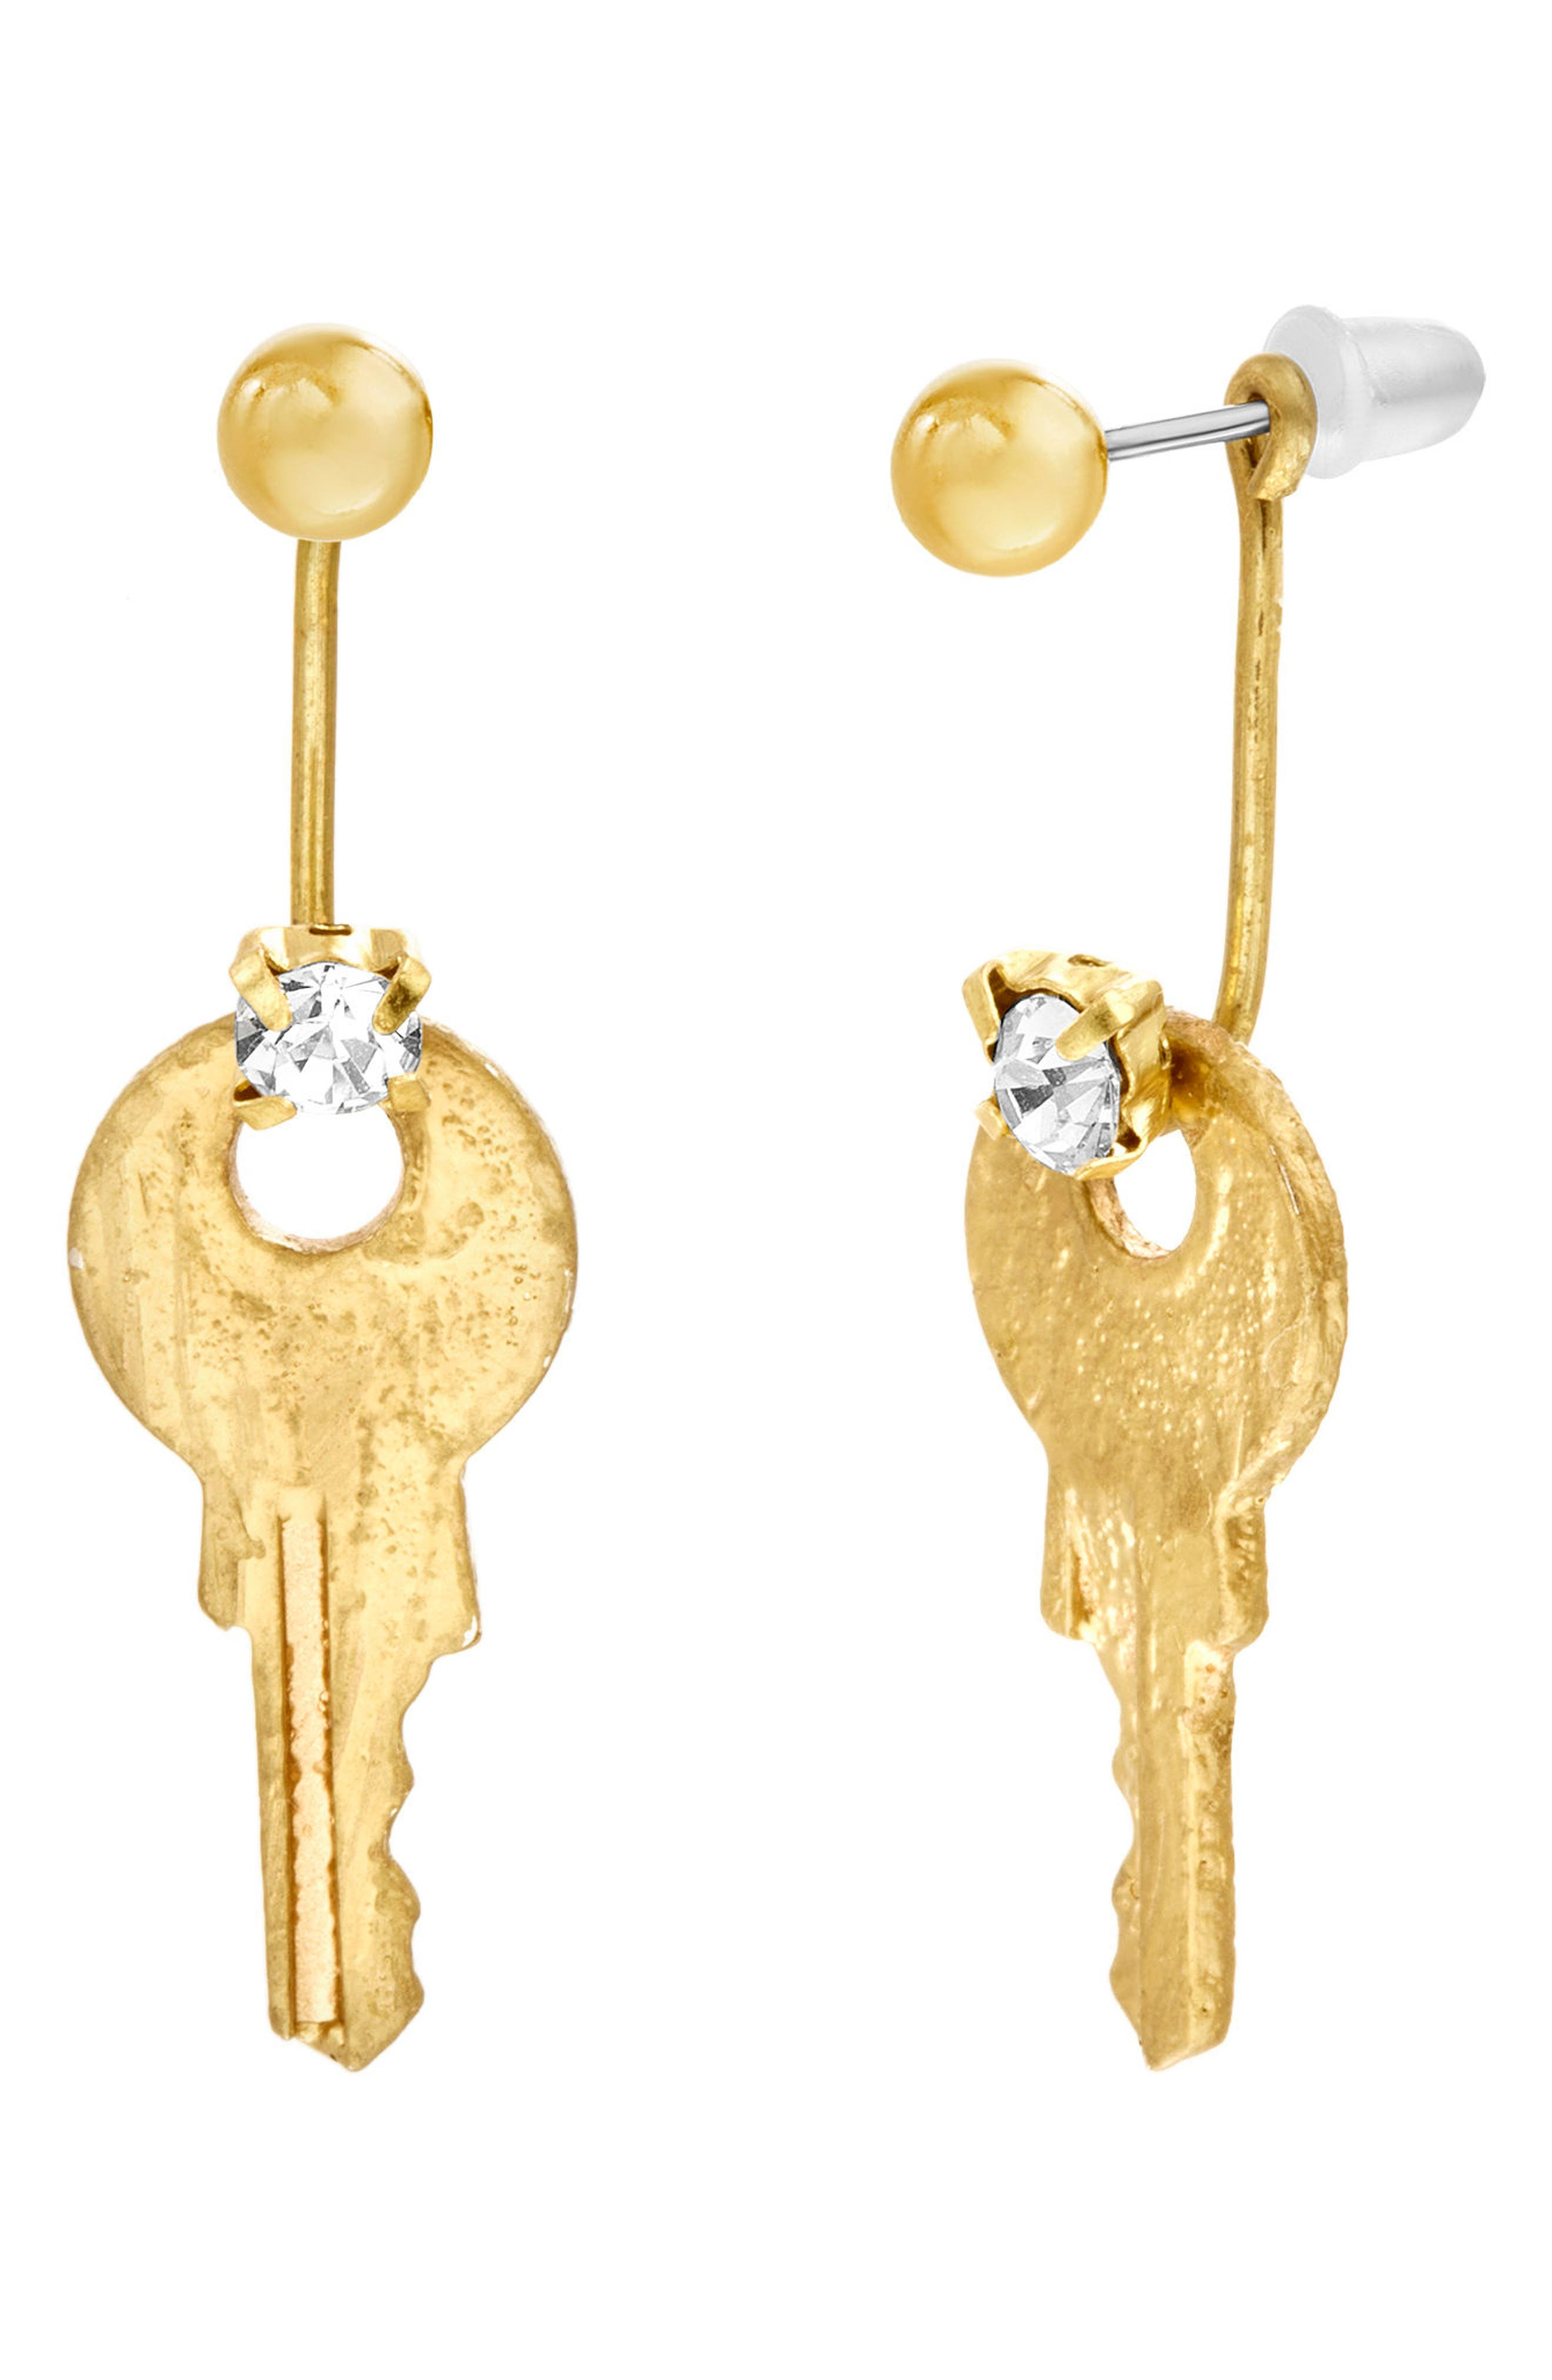 Key Statement Earrings,                         Main,                         color, Gold